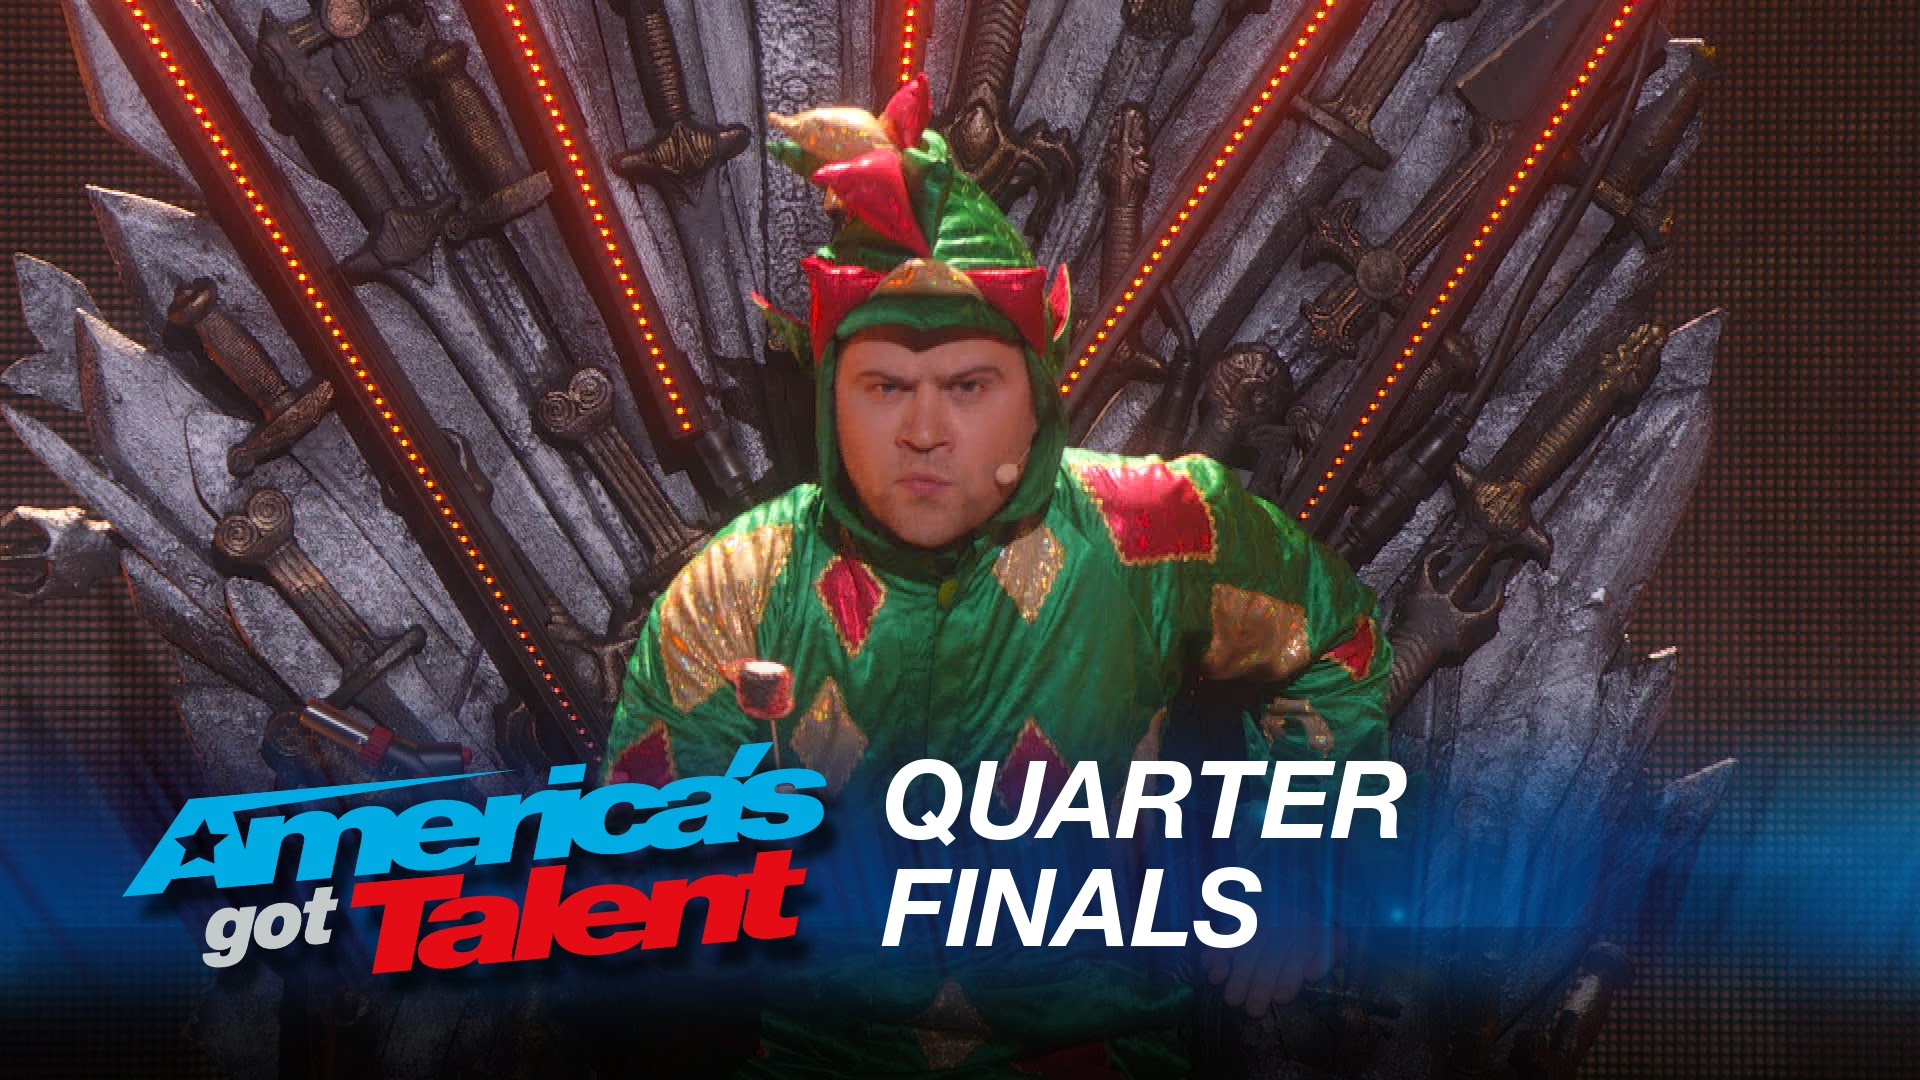 Piff the Magic Dragon's live quarterfinal round of America's Got Talent 2015 at Radio City Music Hall